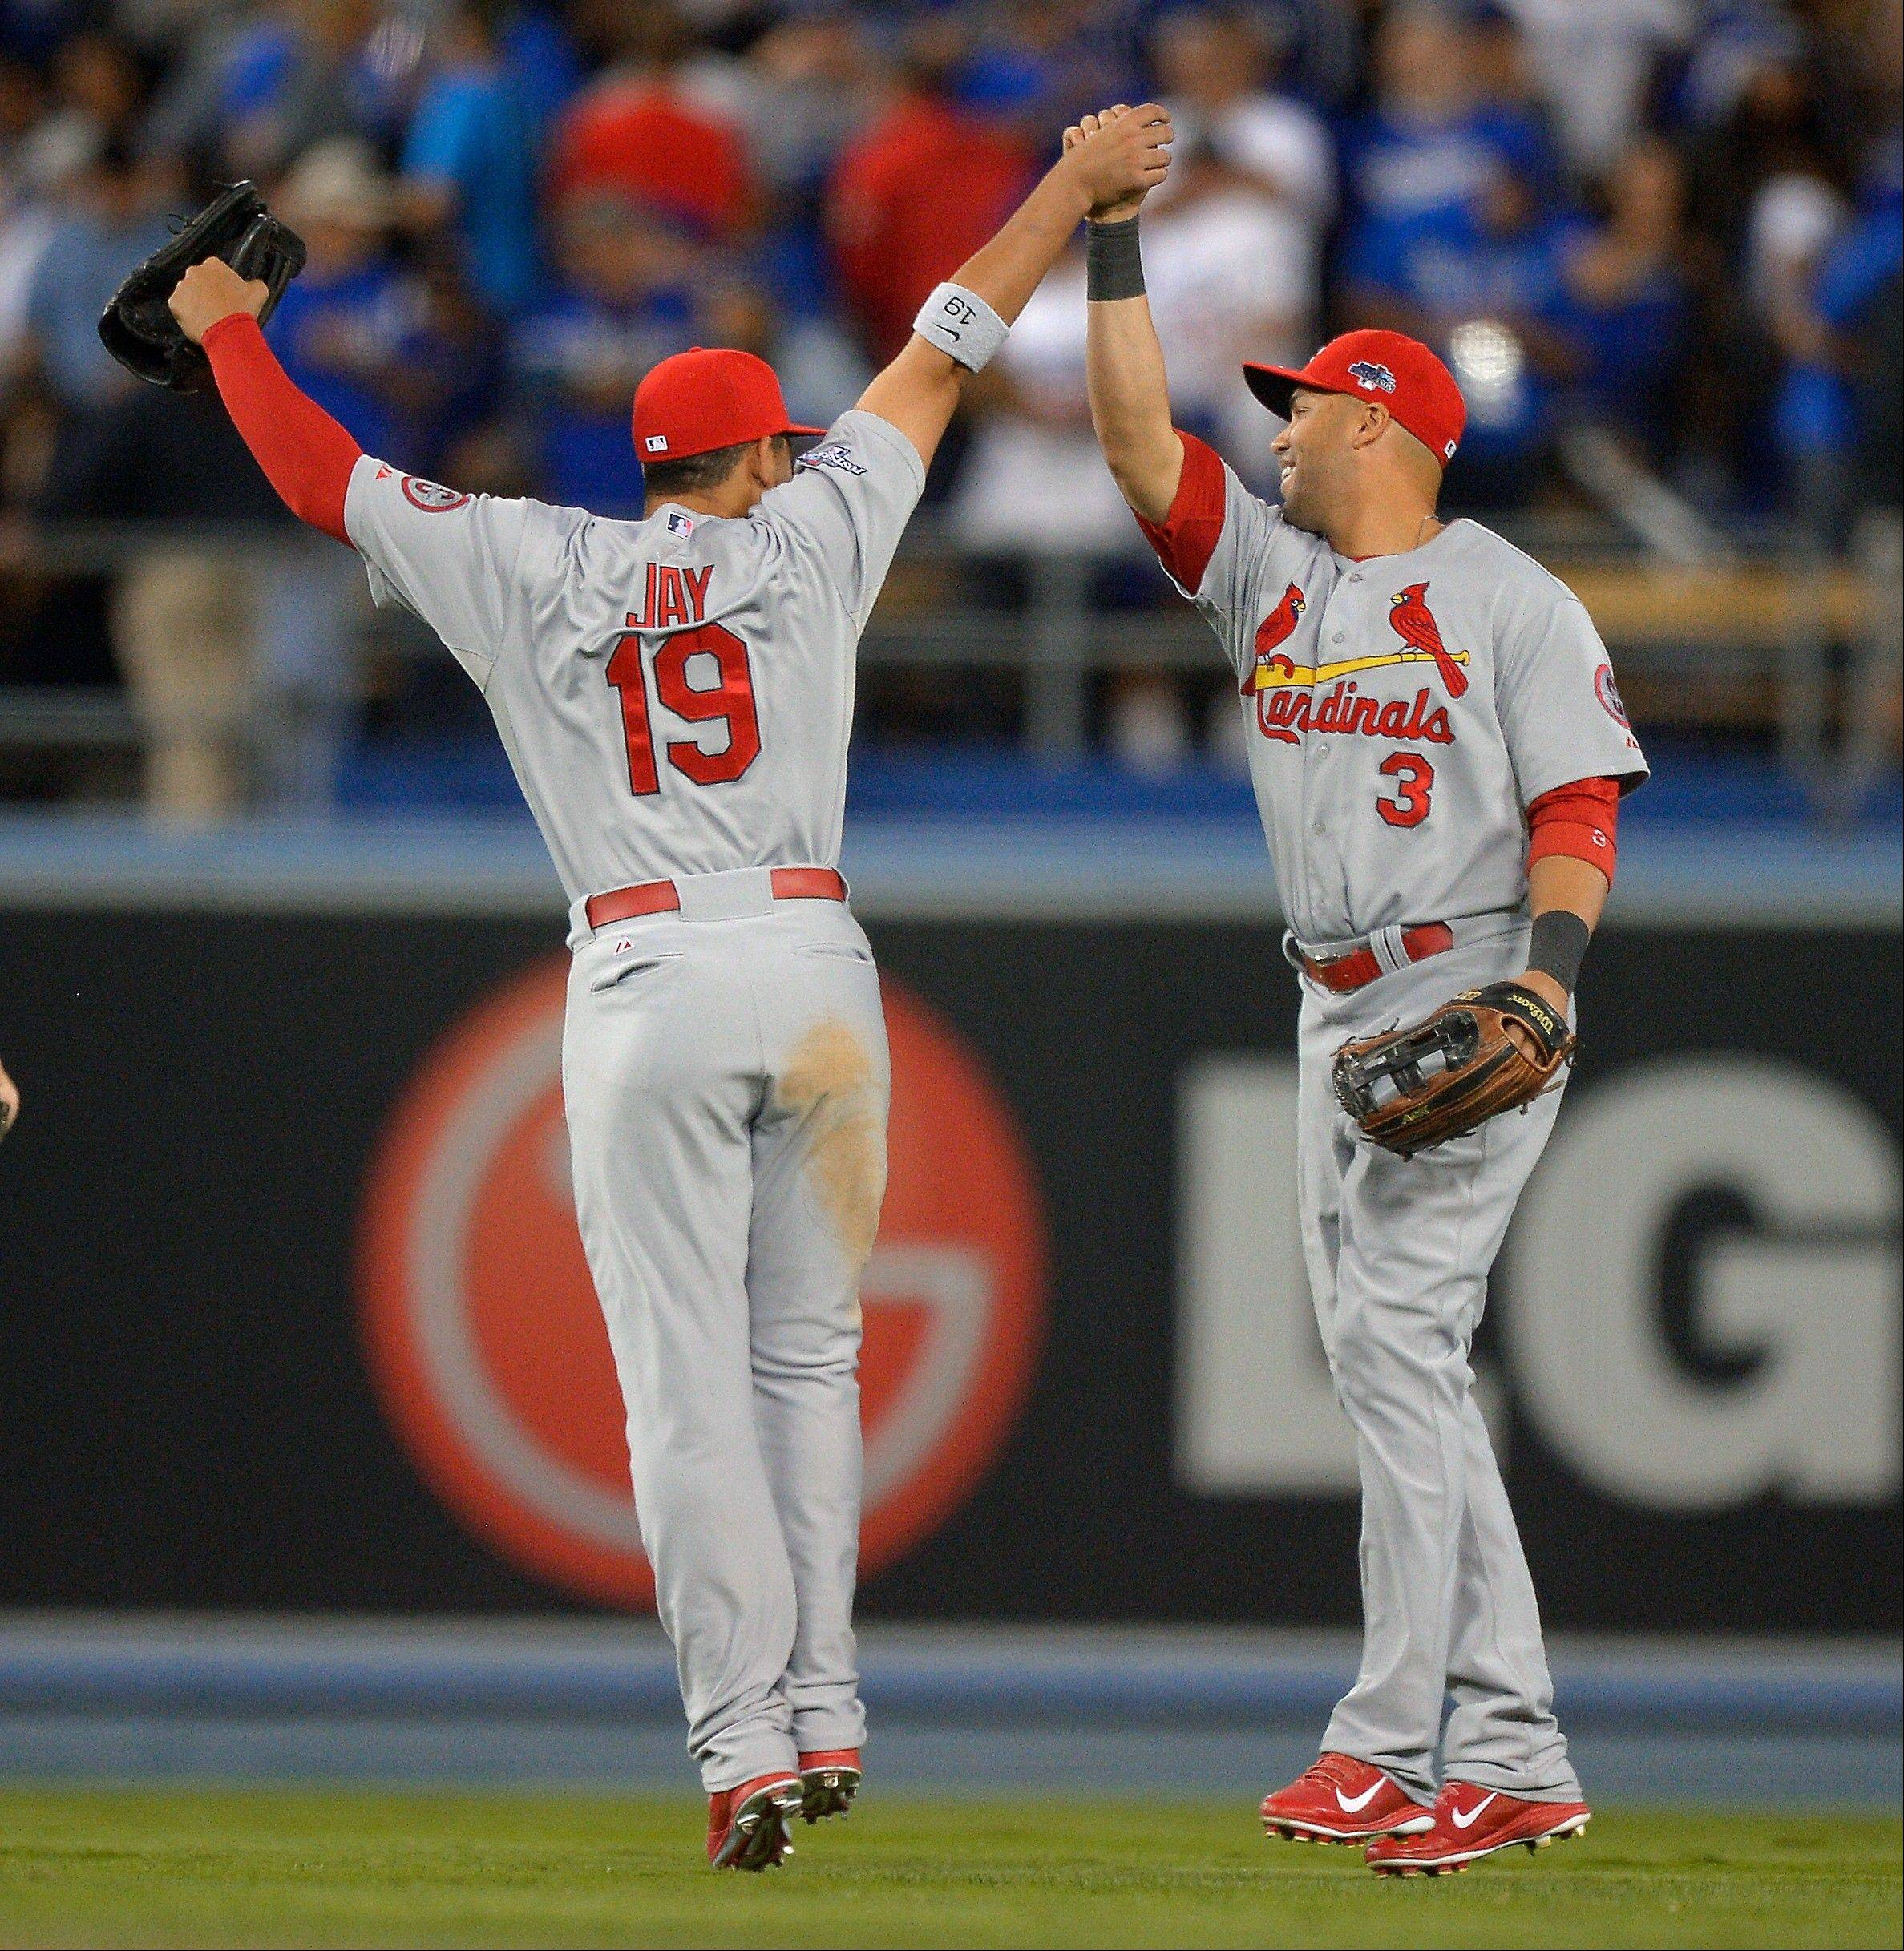 Cards now one win away from World Series